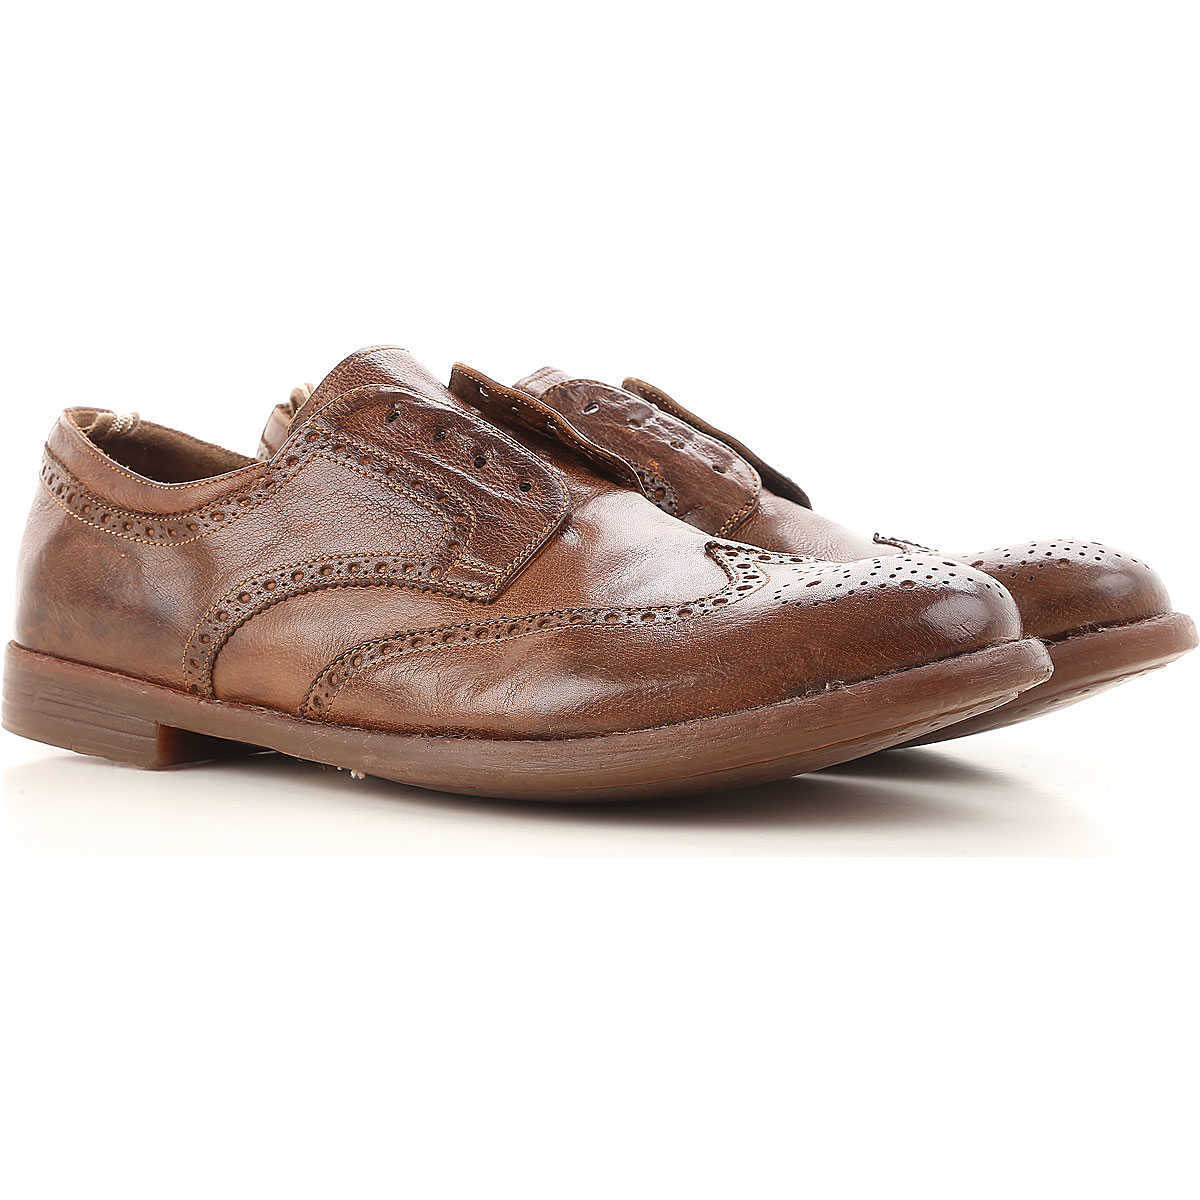 Officine Creative Lace Up Shoes for Men Oxfords Derbies and Brogues On Sale - GOOFASH